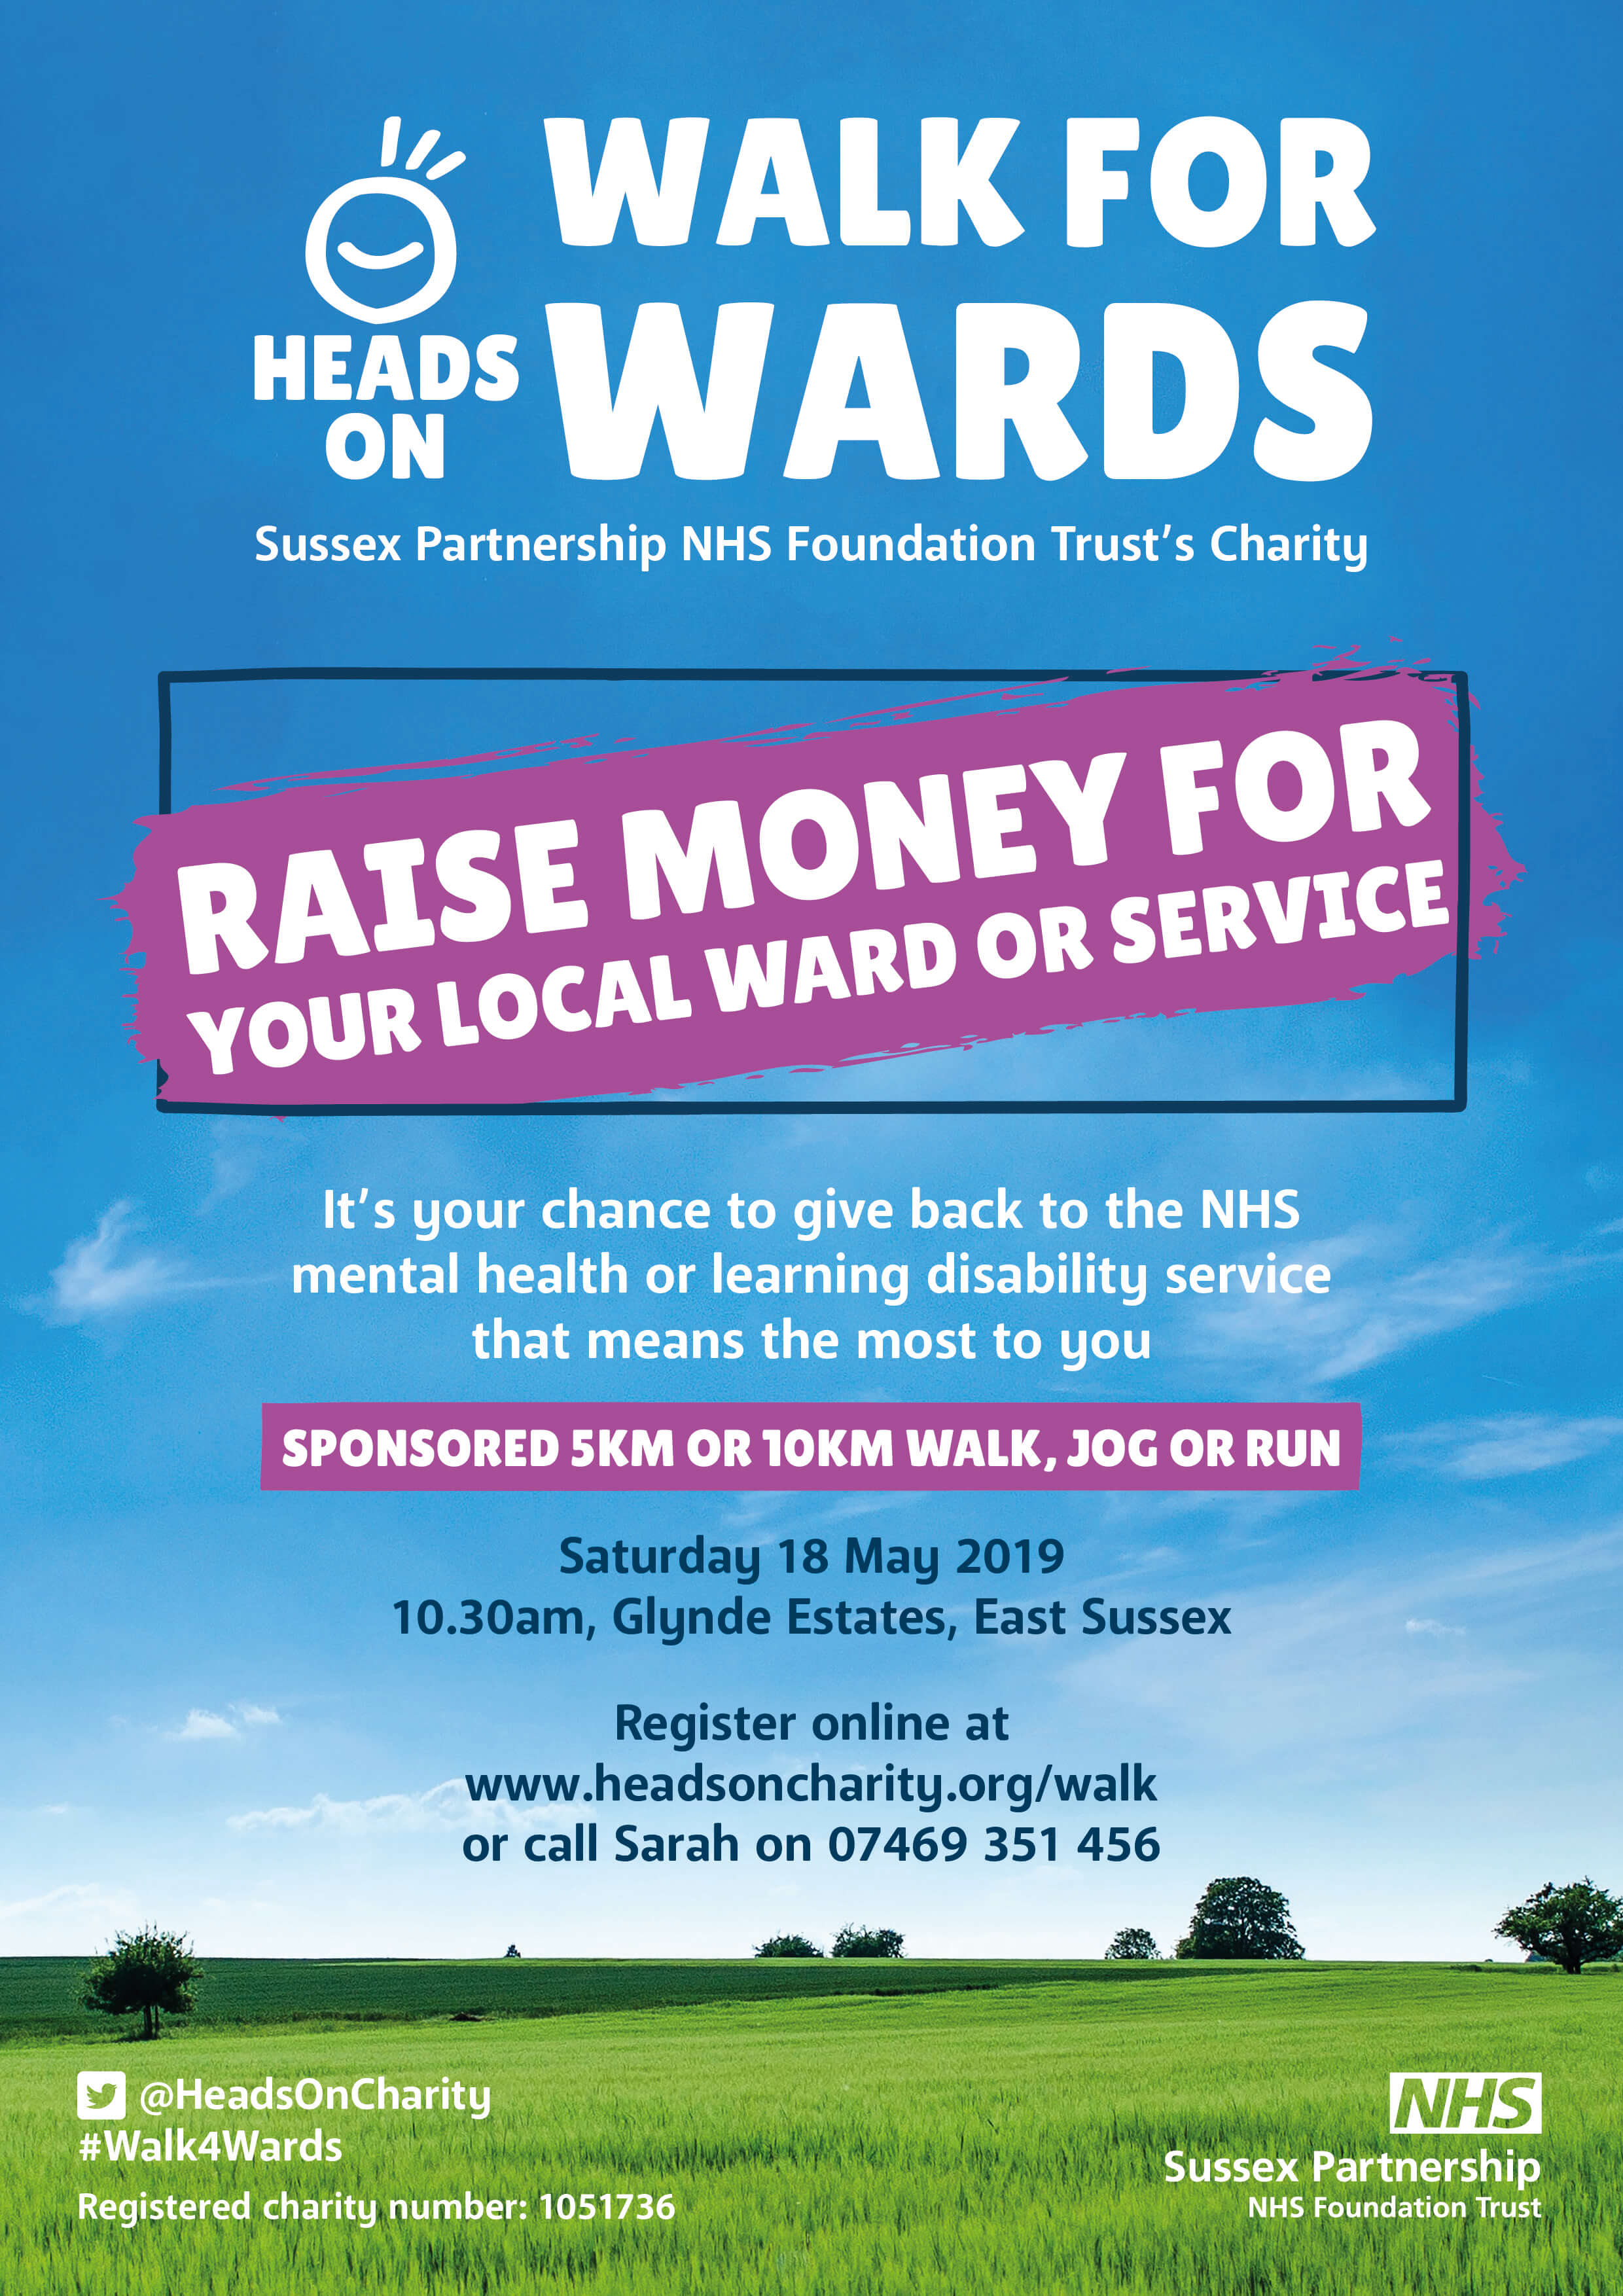 Walk For Wards 2019 Poster.jpg